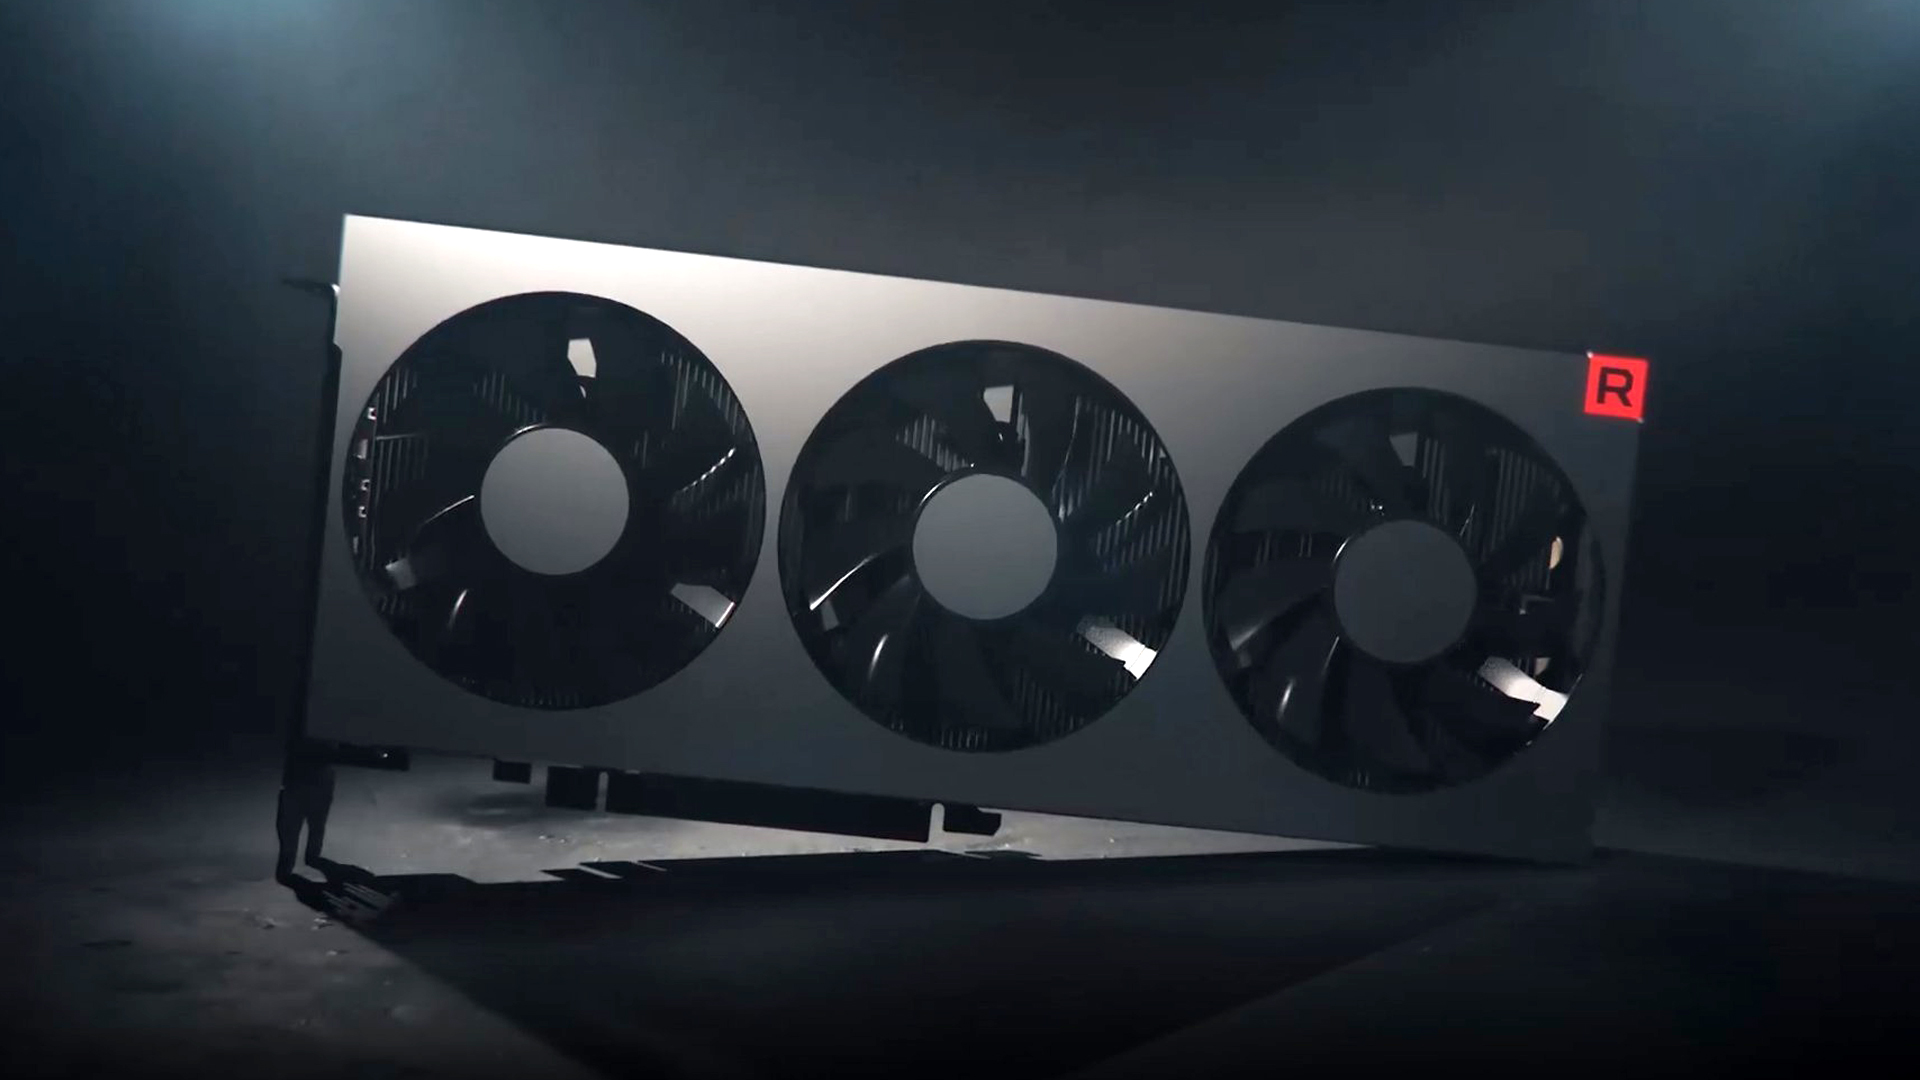 CES 2019: The Evolution and Pop-Offs Between AMD and Nvidia GPUs